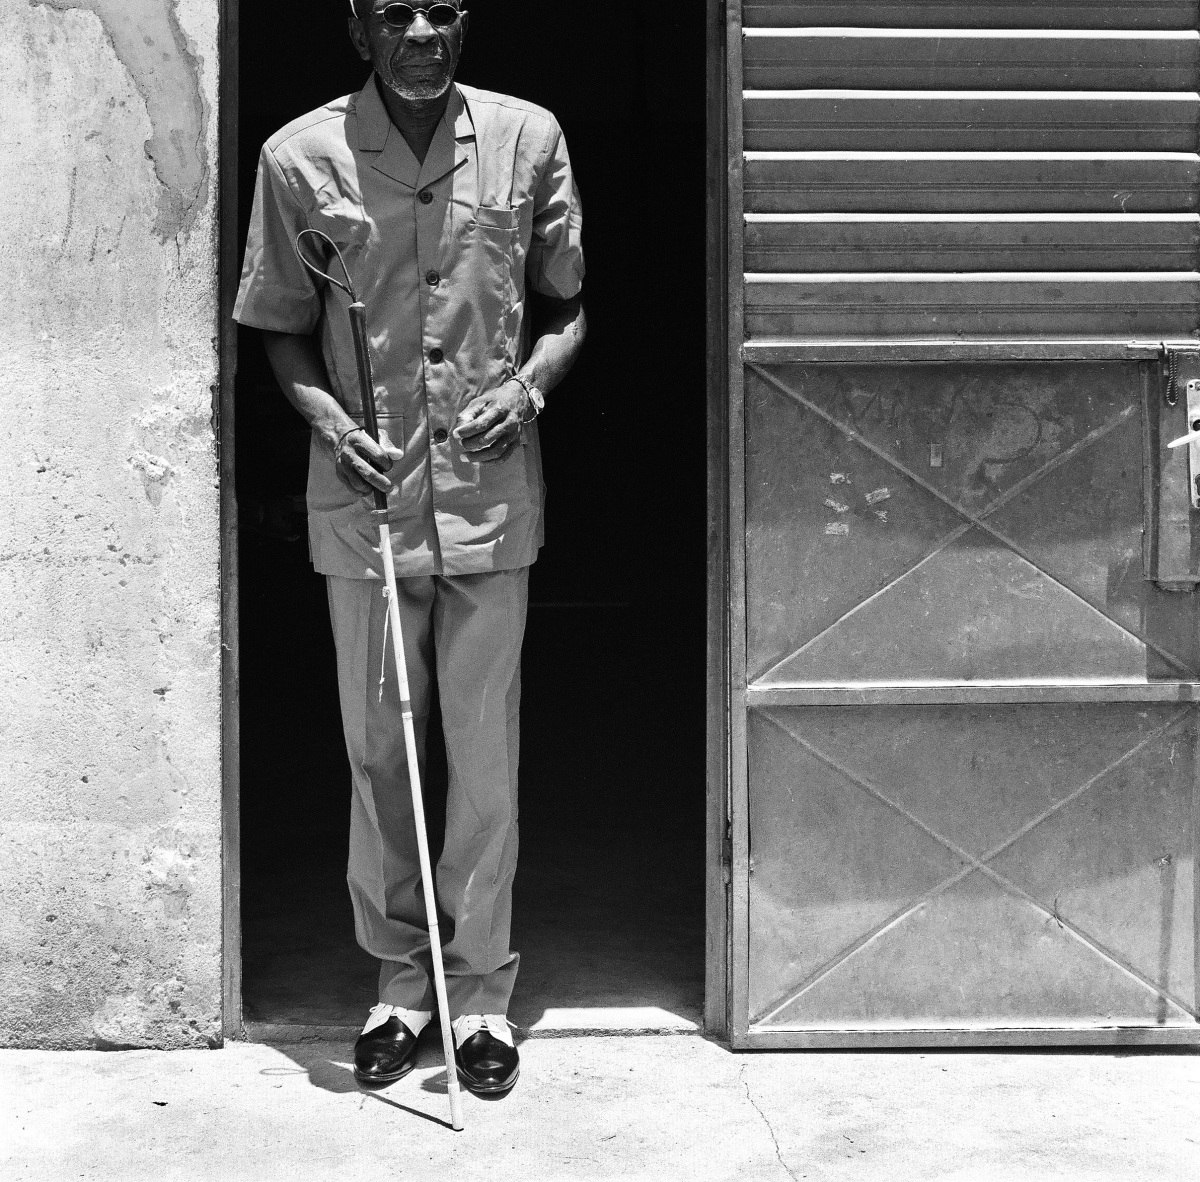 blind_man_with_cane